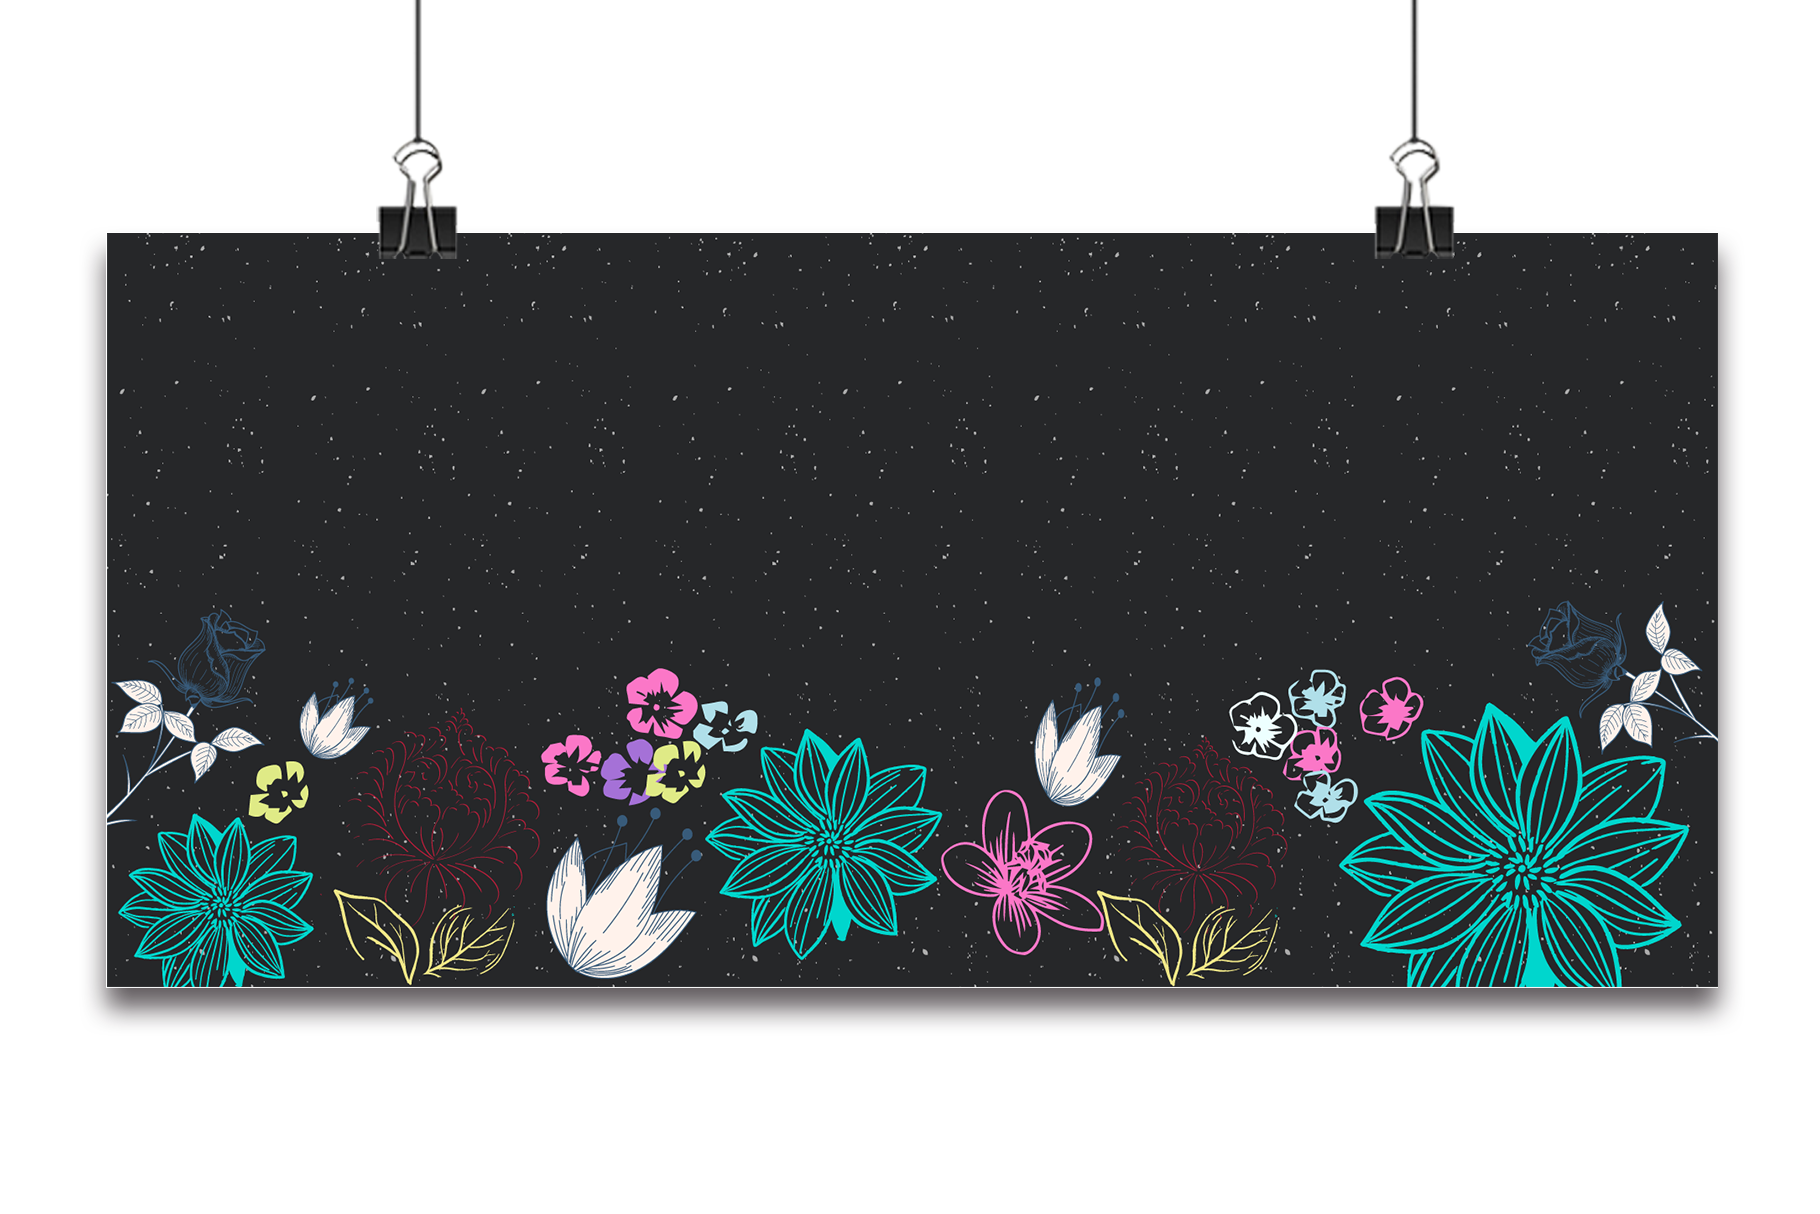 Floral Vector Graphics Design Background Hd Png Free Svg Cut Files Create Your Diy Projects Using Your Cricut Explore Silhouette And More The Free Cut Files Include Svg Dxf Eps And